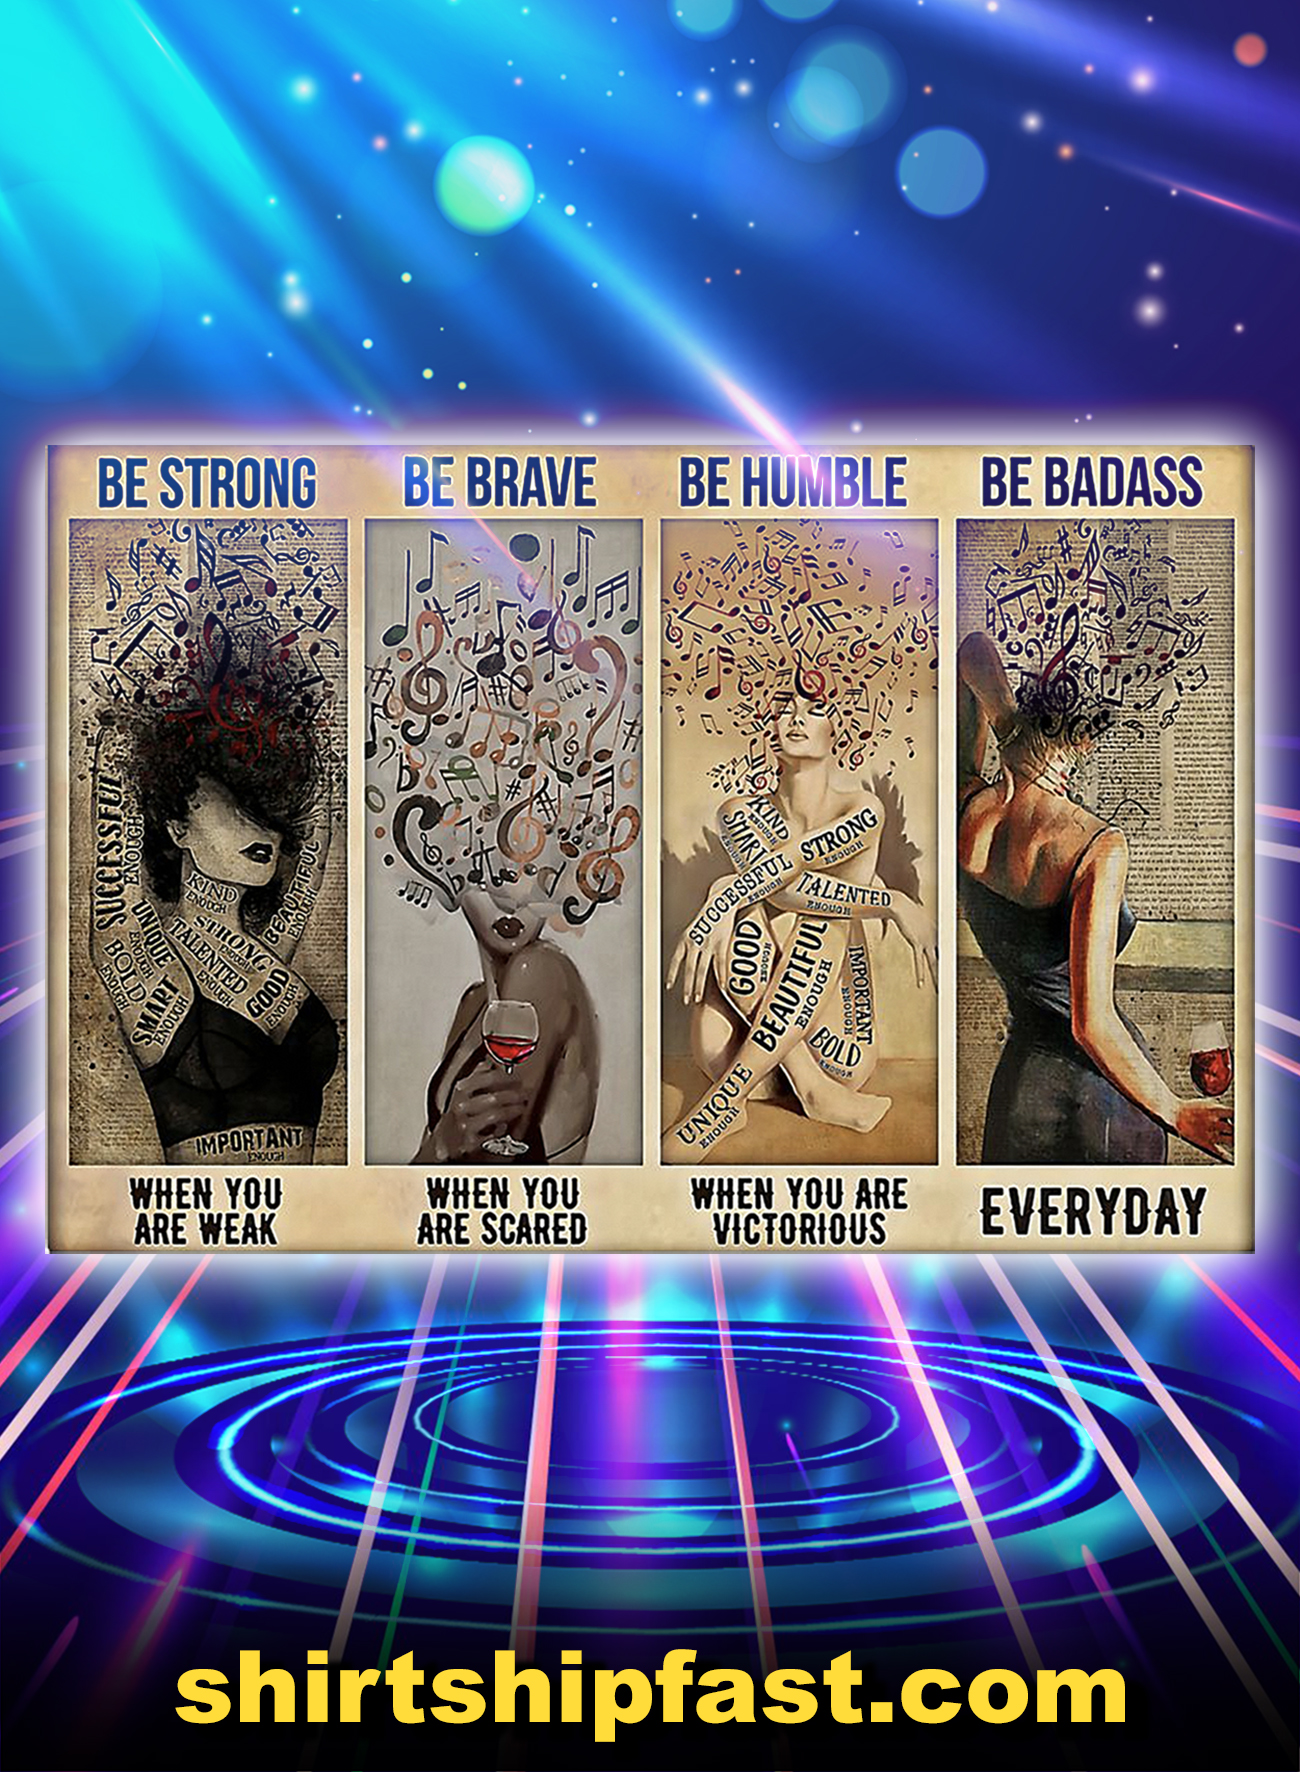 Girl and music be strong be brave be humble be badass poster - A1